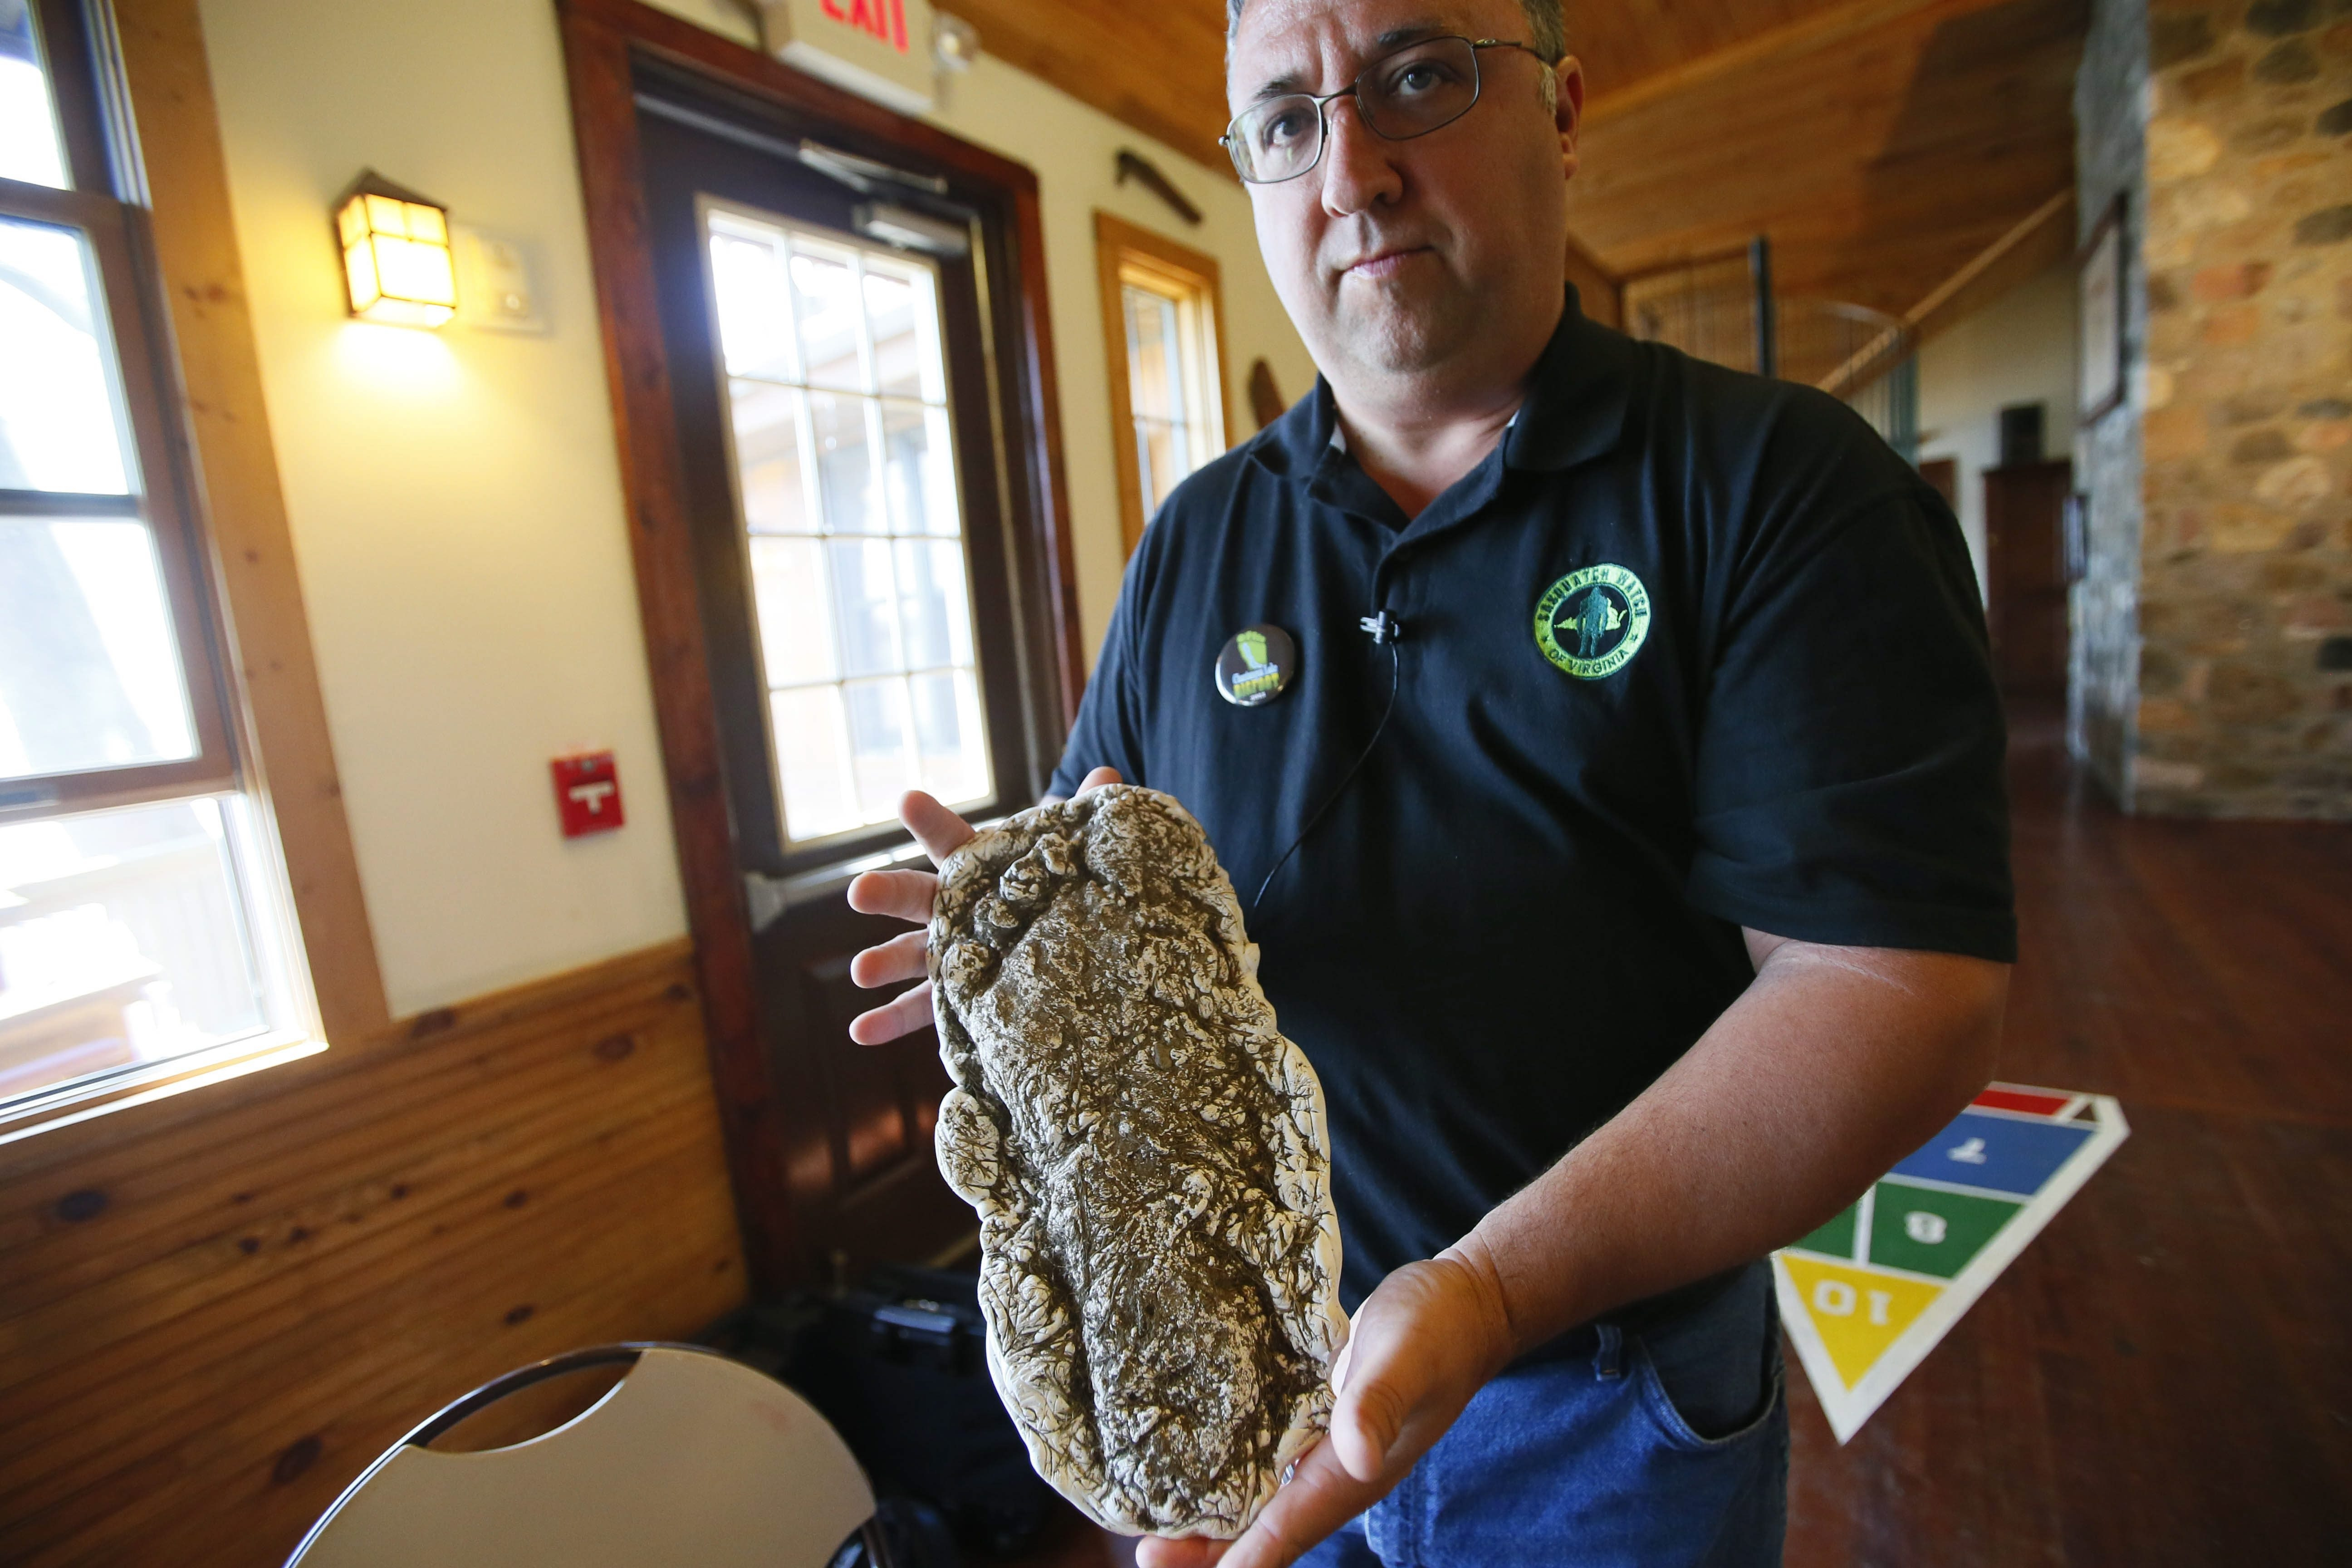 Billy Willard, director of Sasquatch Watch of Virginia, shows off a cast of an extremely large footprint he found and displayed during the Chautauqua Lake Bigfoot Weedend and Expo at the YMCA Camp Onyahsa in Dewittville last year.